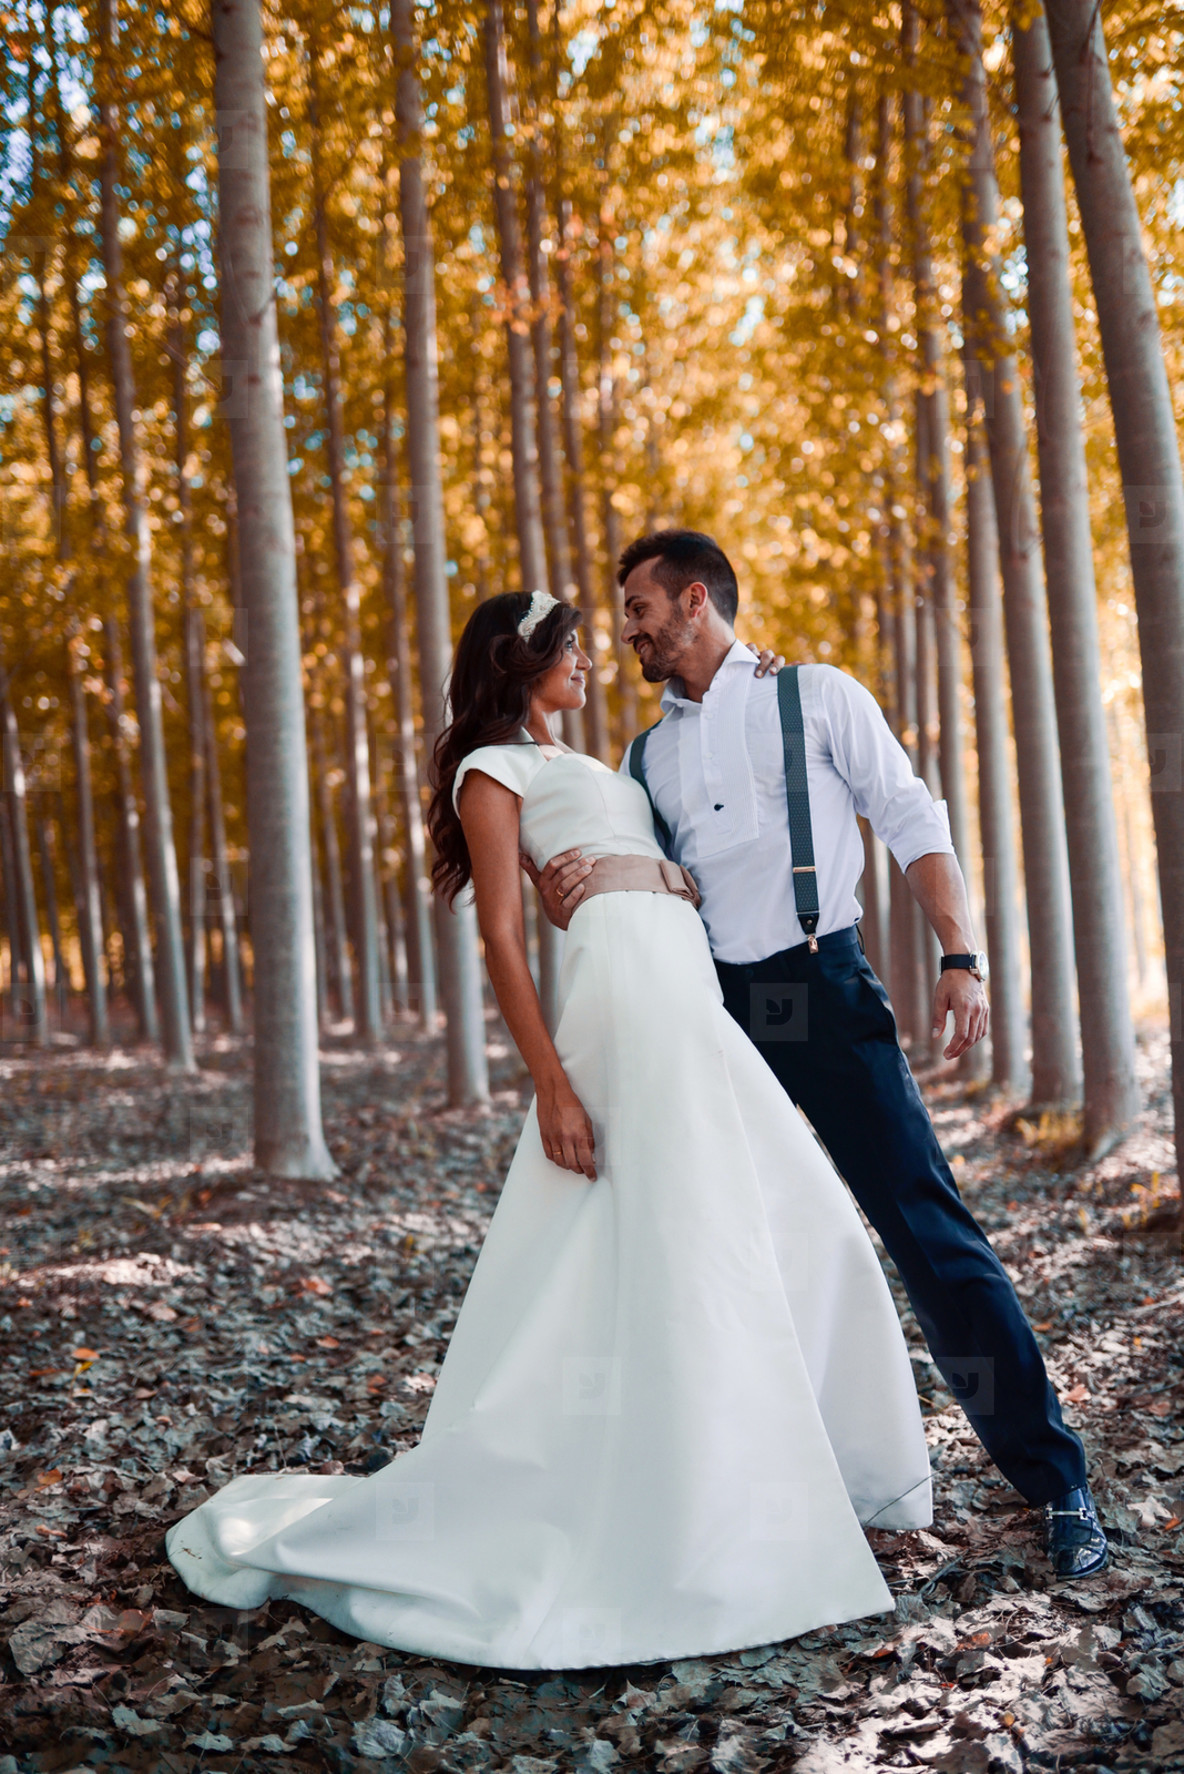 Just married couple in poplar background